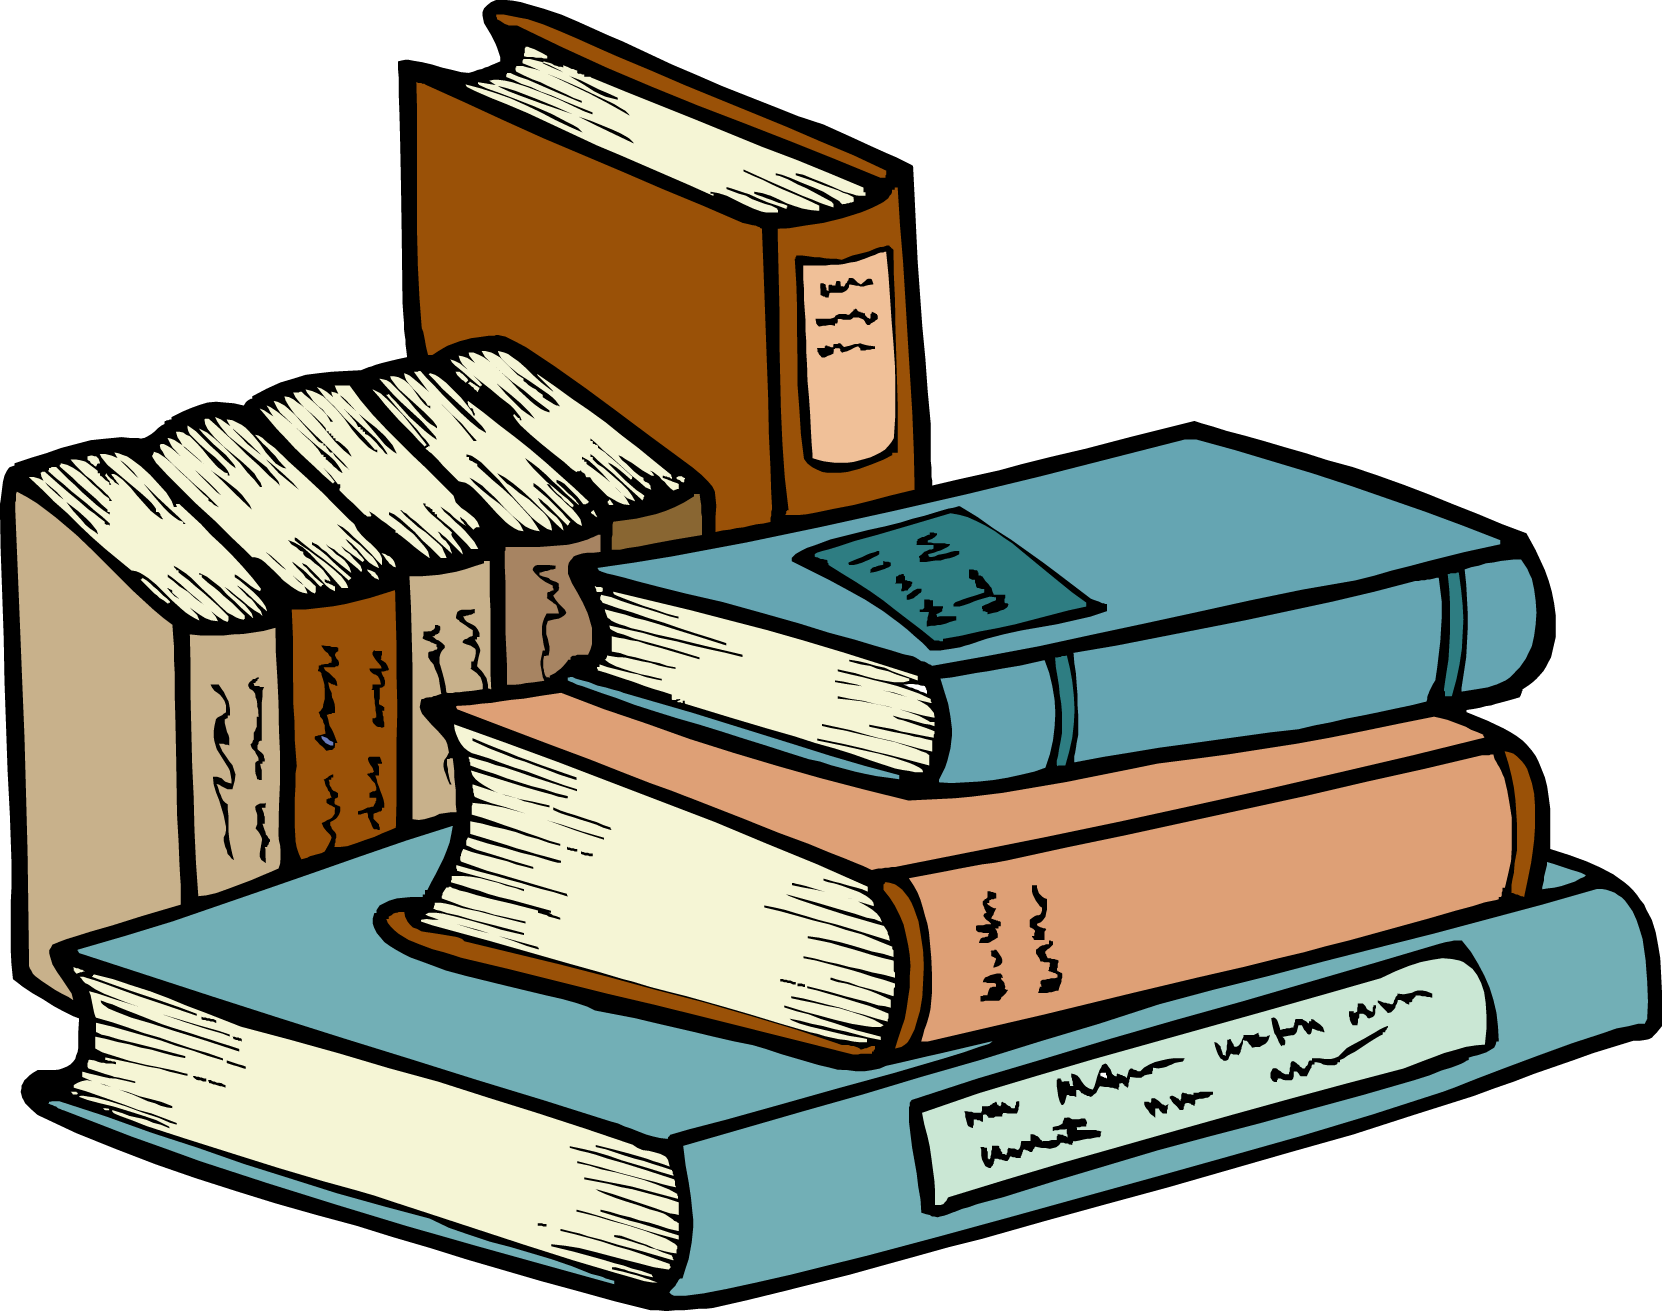 Library Books Clip Art | Clipart Panda - Free Clipart Images